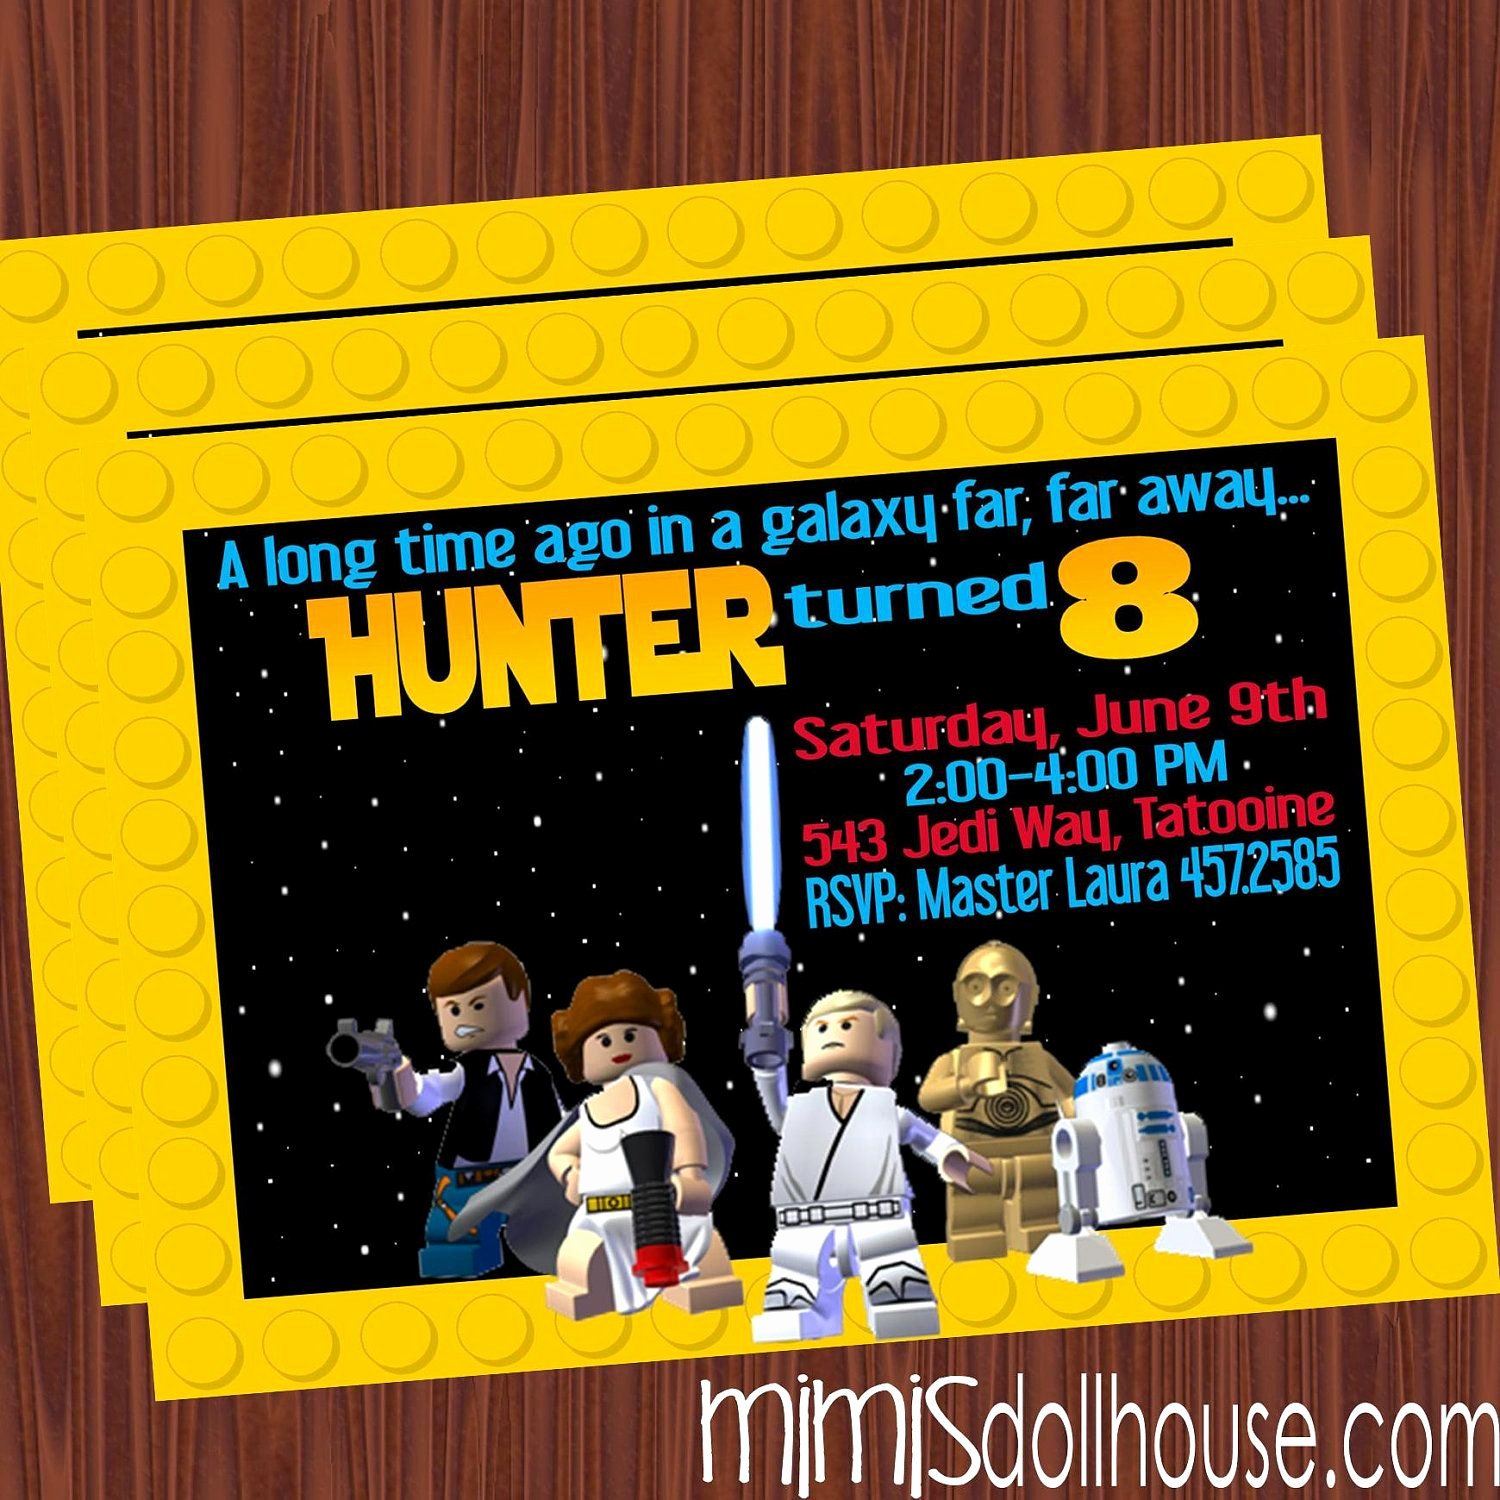 Lego Star Wars Birthday Invitations Awesome Lego Star Wars Party Invitation Lego Star Wars by